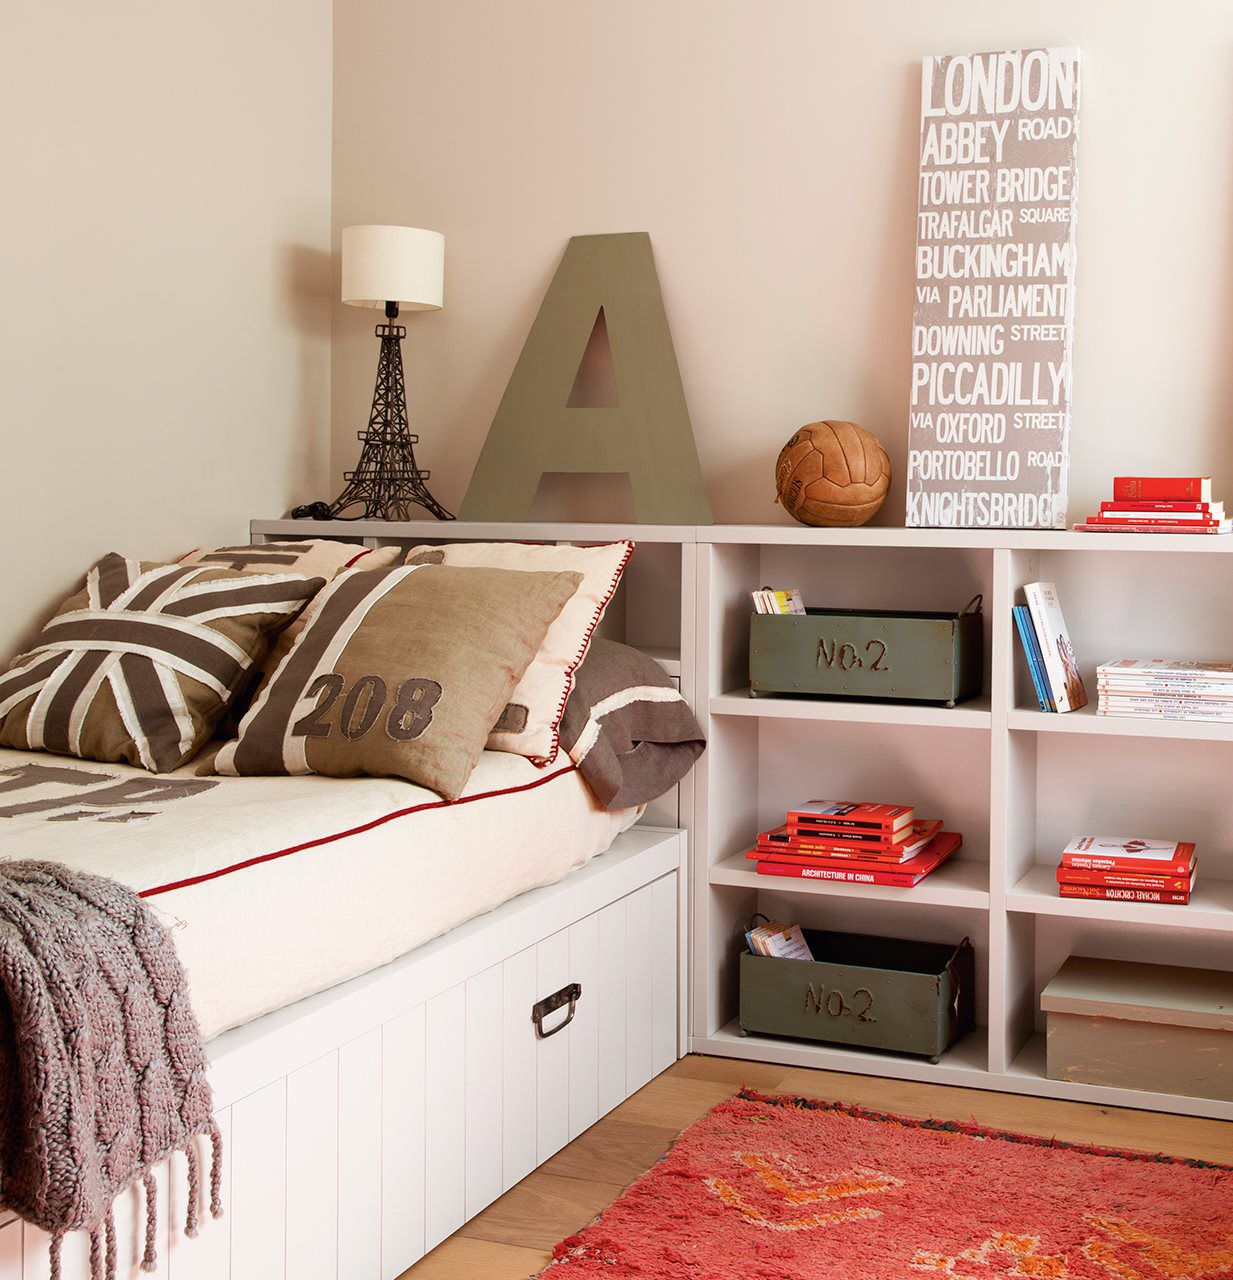 These Design Ideas For Small Bedrooms Can Help You Meet The Challenge With  Ease And Style. Check Out The List Of 52 Small Bedroom Decorating Ideas.